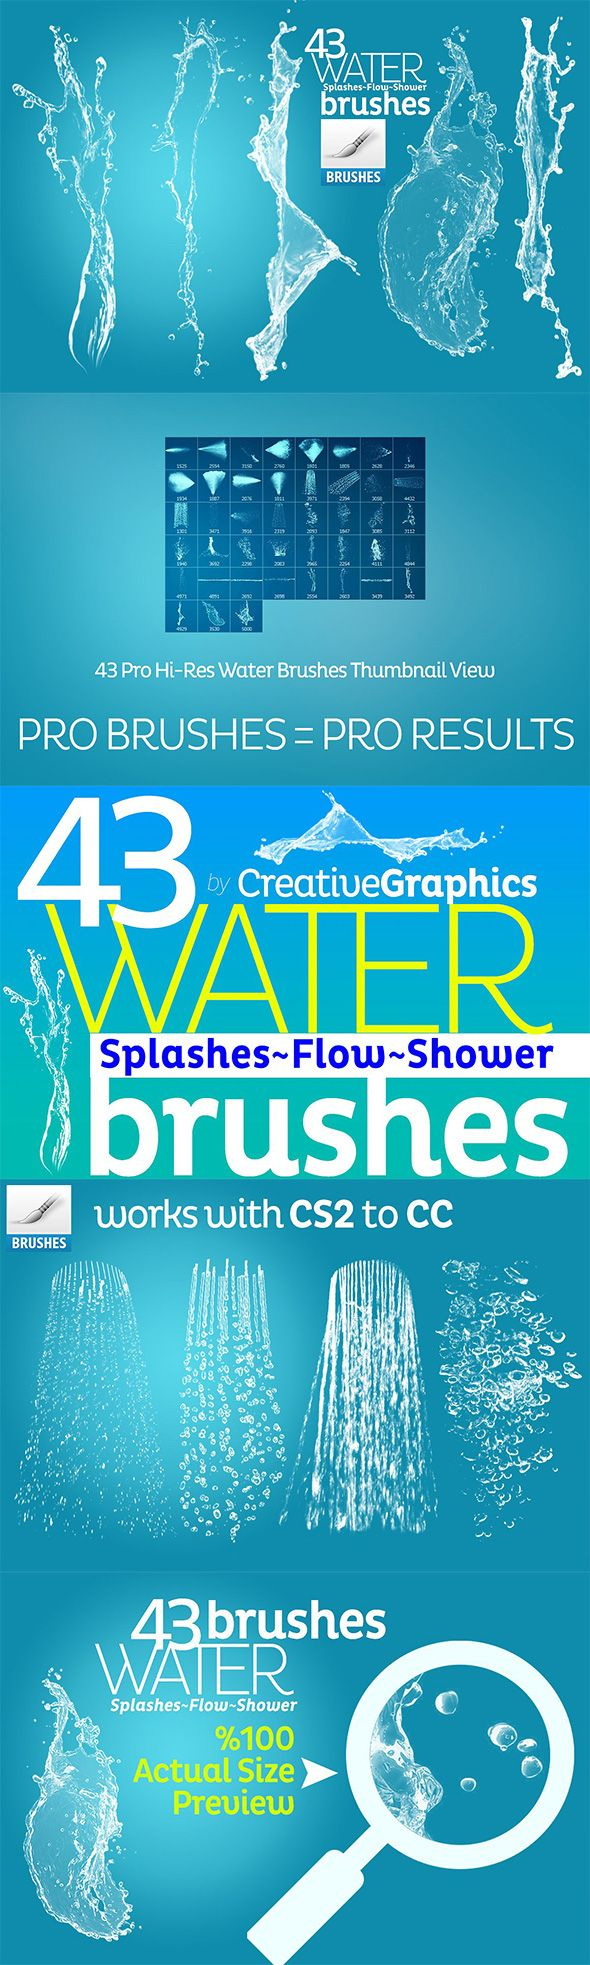 Water Brushes For Photoshop Cs2 Cc Brushes Photoshop Idei Dlya